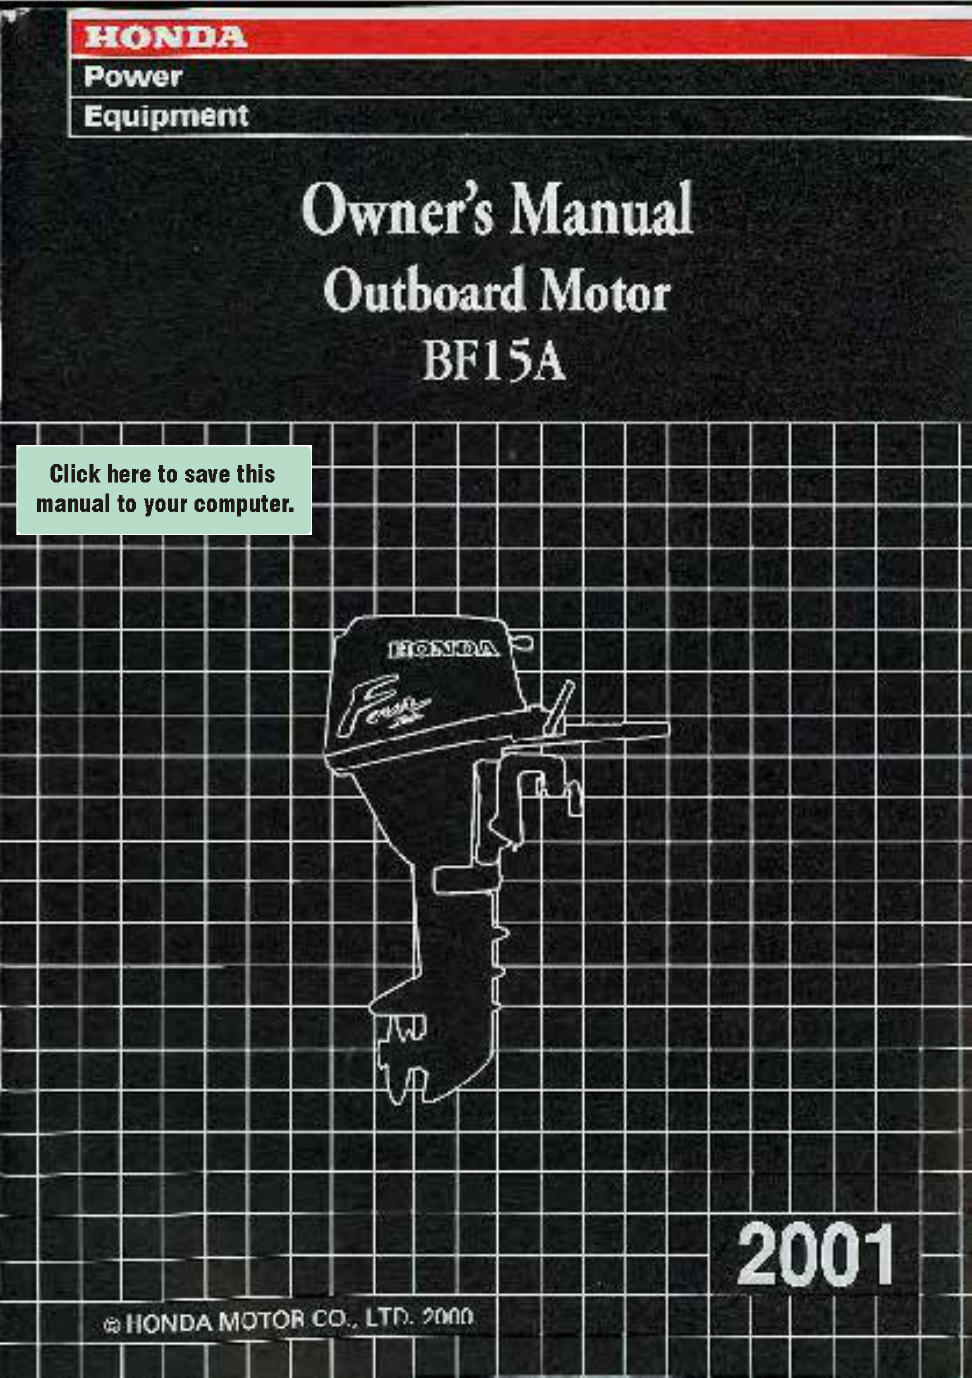 honda bf15 baas 1600001 1699999 owner s manual free pdf download rh manualagent com Honda Outboards 15 HP Evinrude Parts